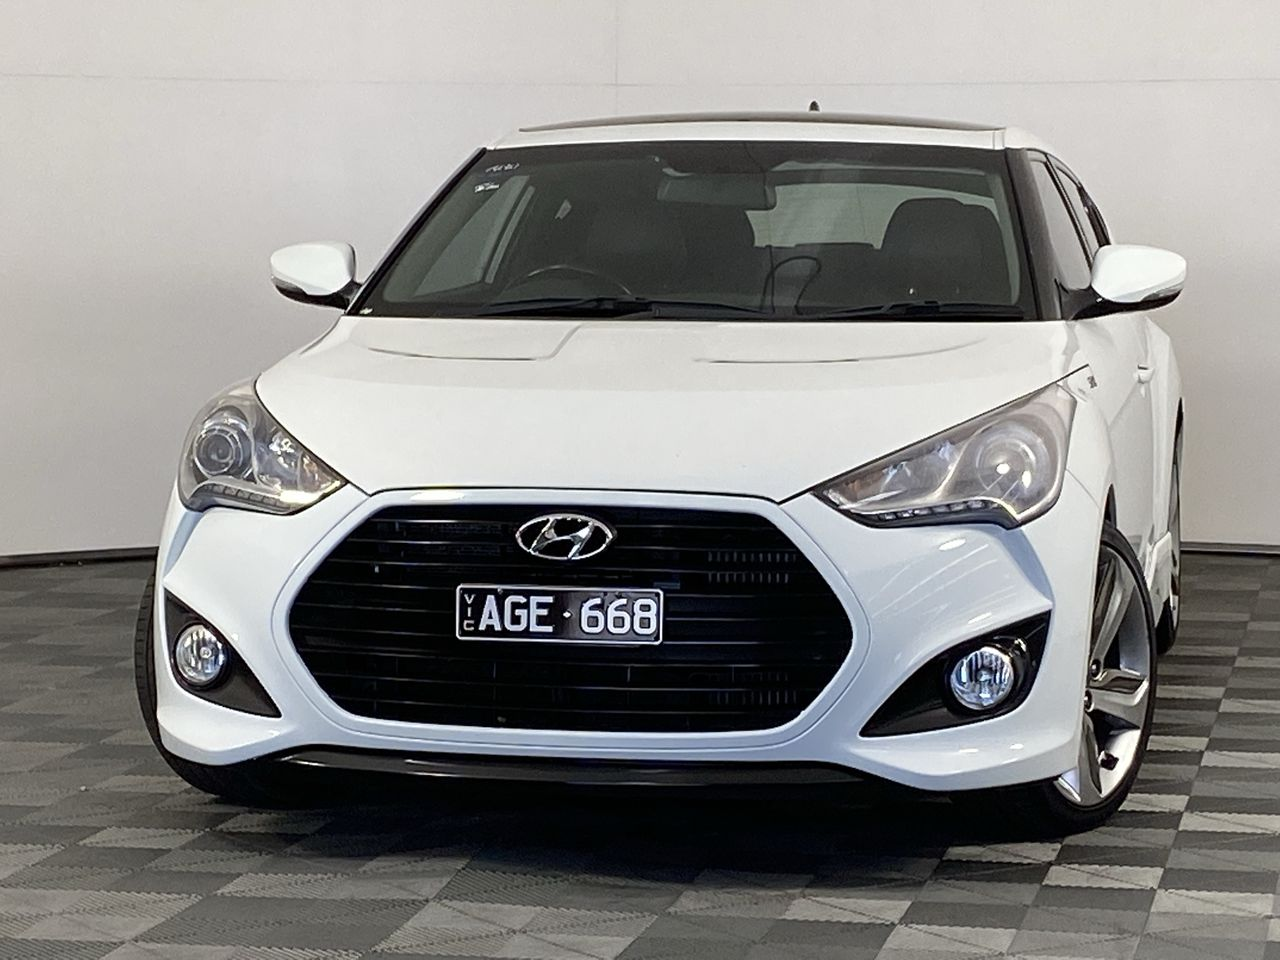 2014 Hyundai Veloster SR TURBO FS Automatic Coupe